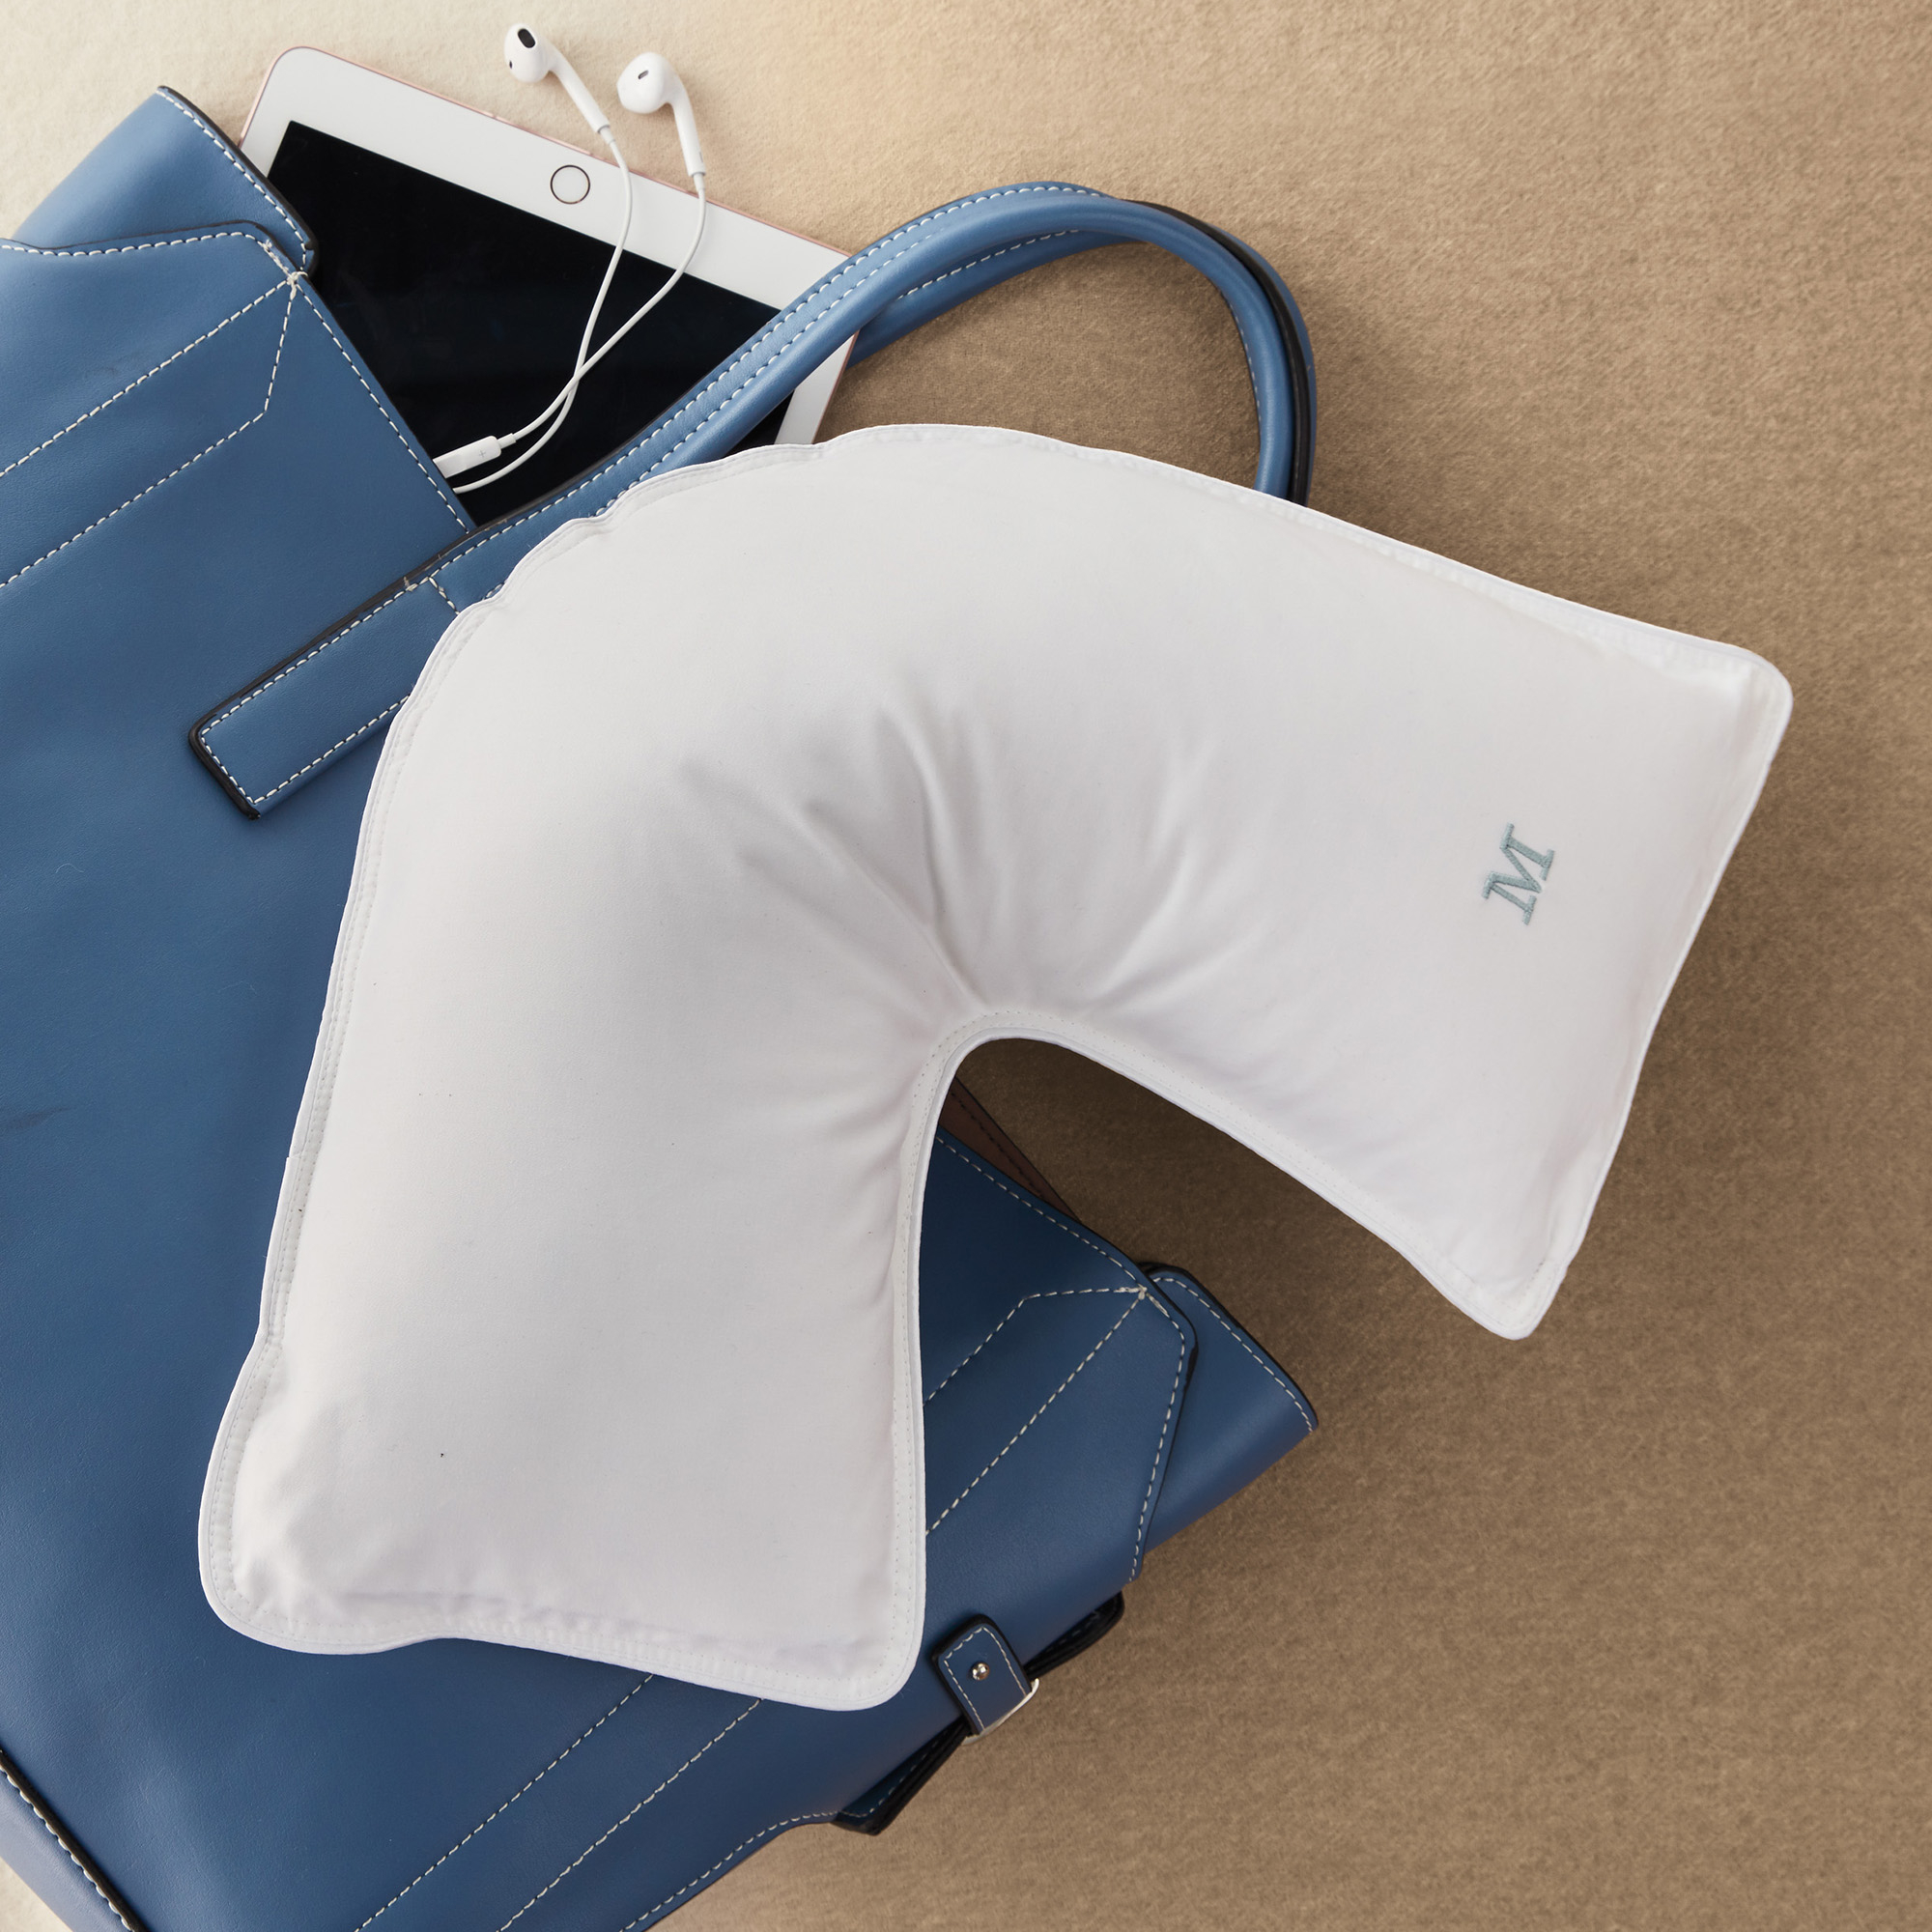 Gump's Luxe Travel Pillow